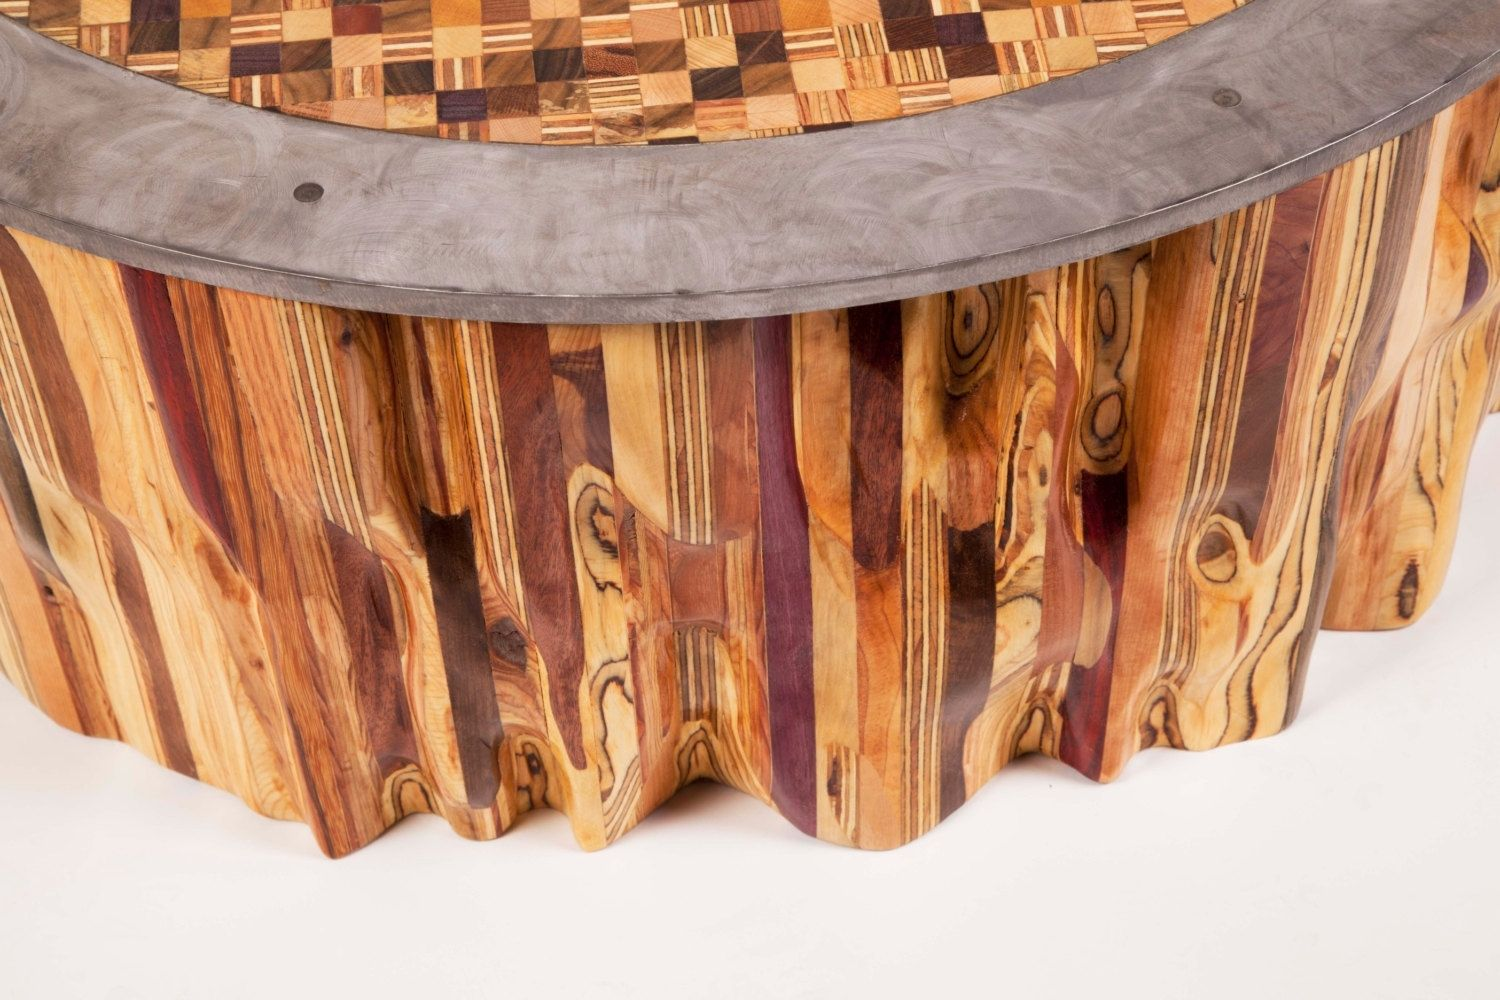 Hand Made Mixed Wood Mosaic End Grain Top Coffee Table By Fast Industries Llc Custommade